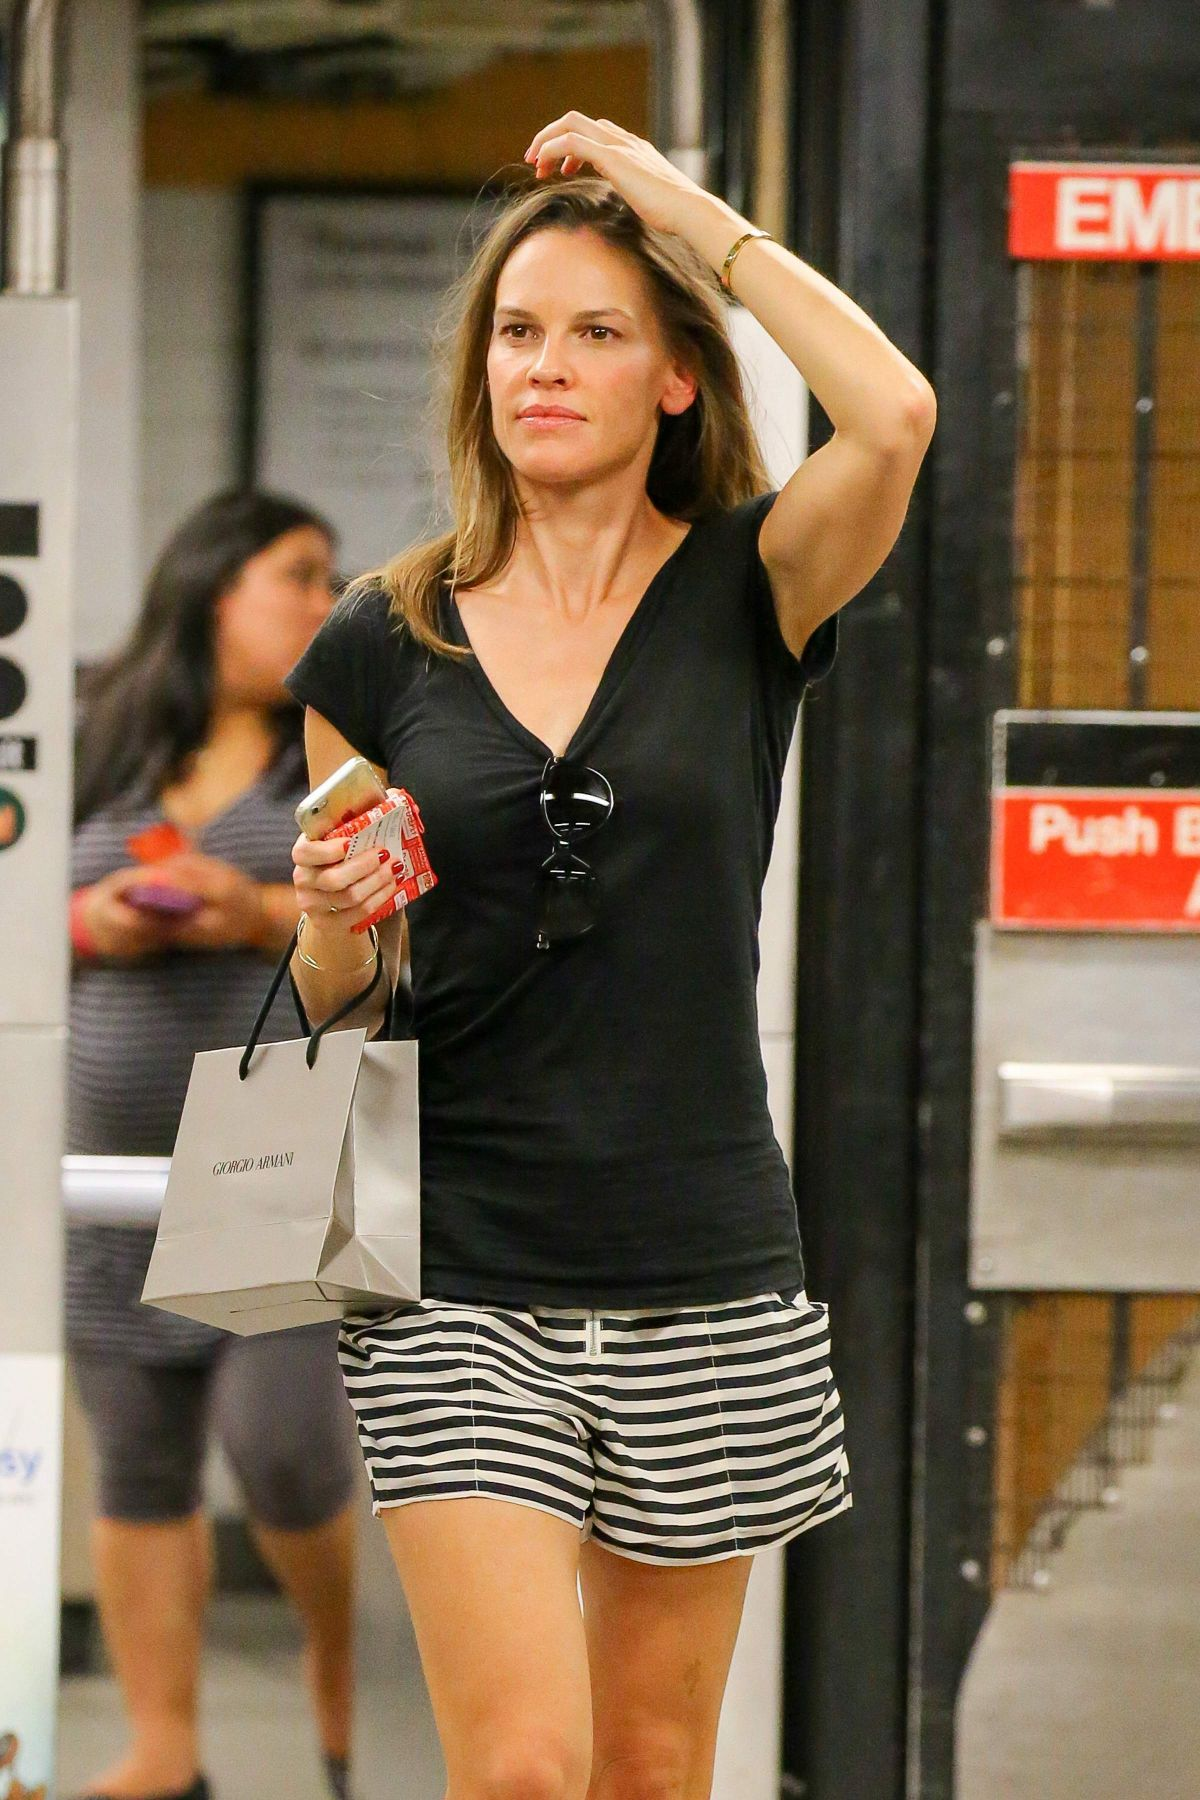 Hilary Swank Catch An Uptown E Train After Shopping At Giorgio Armani